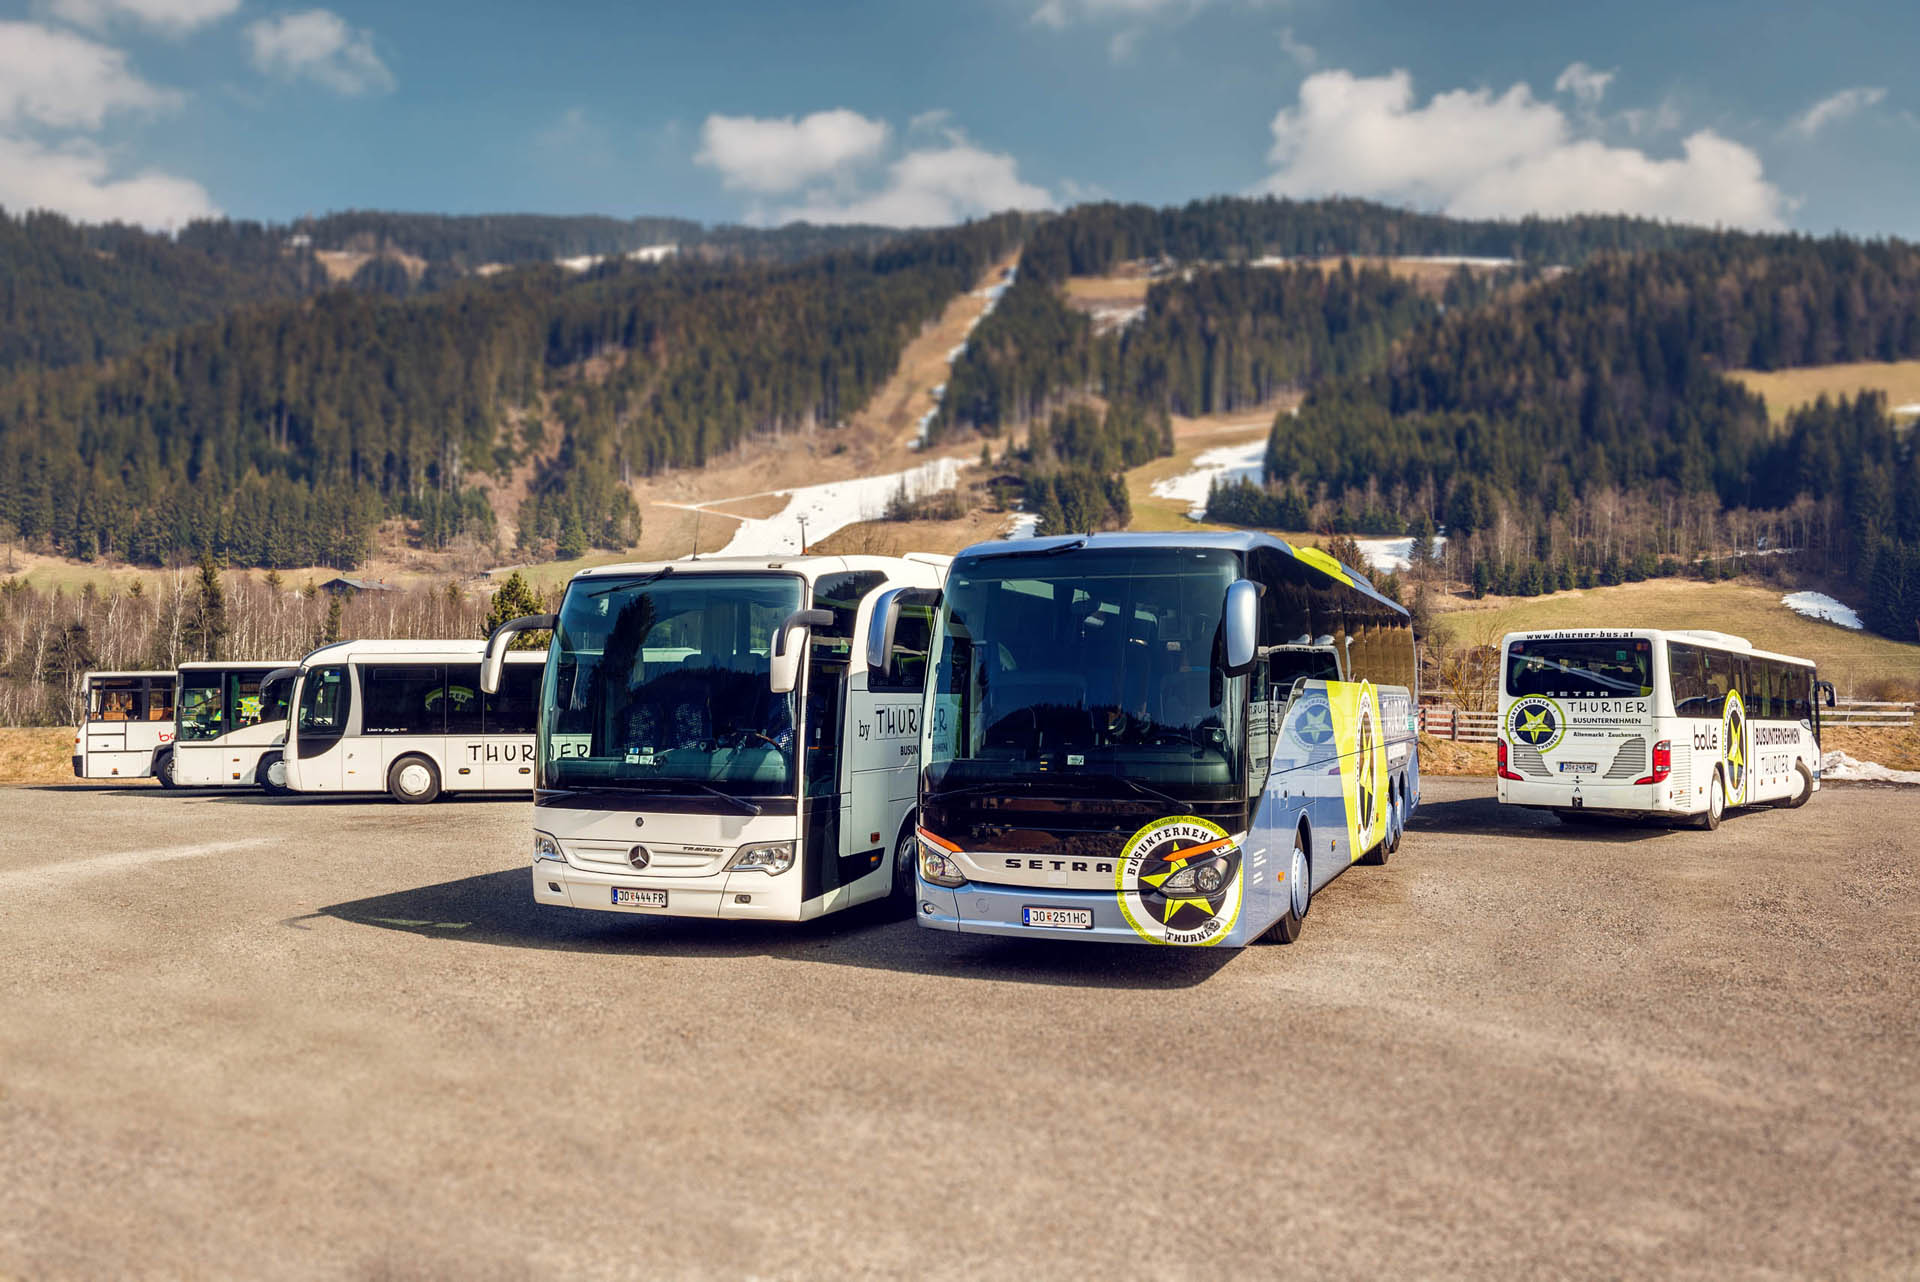 thurner-bus-flotte-7_2